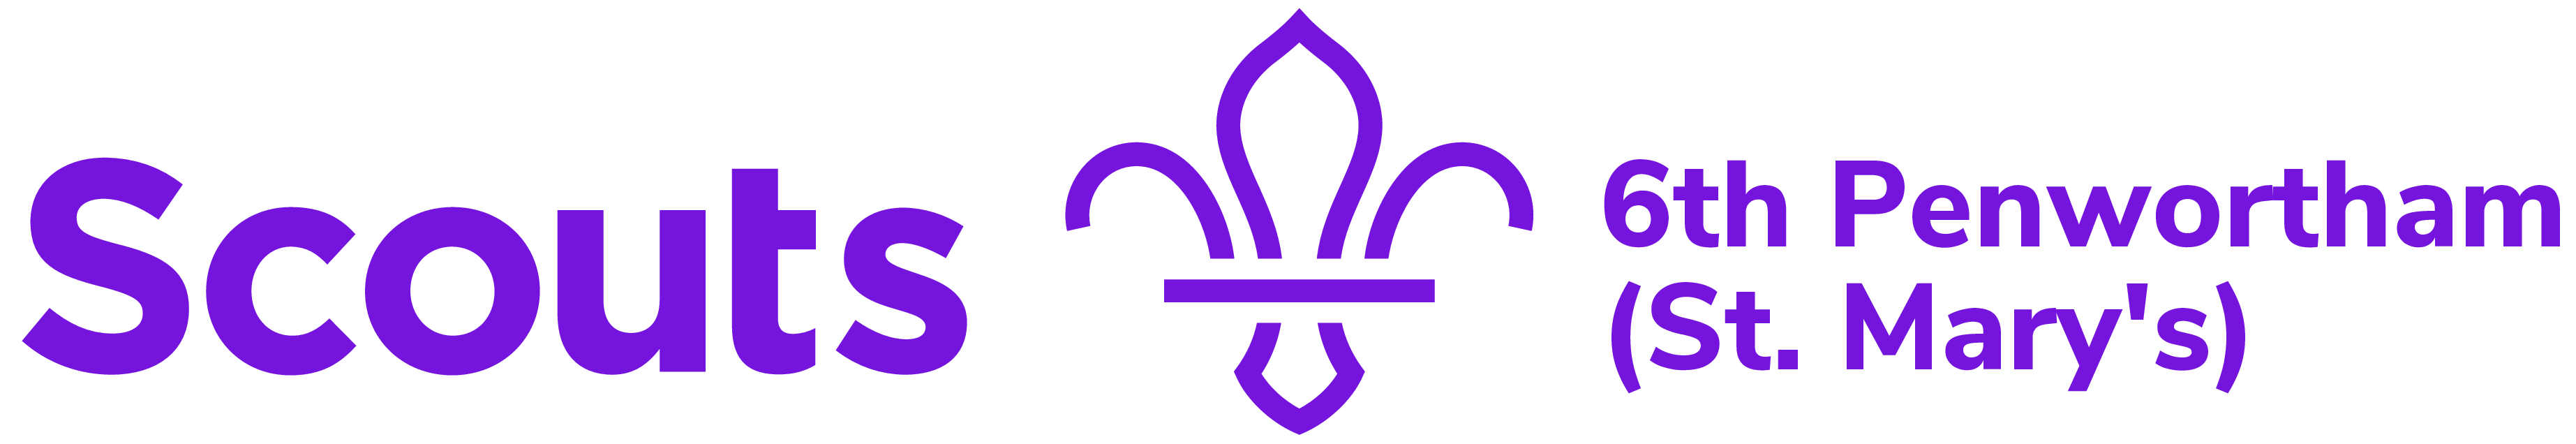 6th Penwortham Scout Group